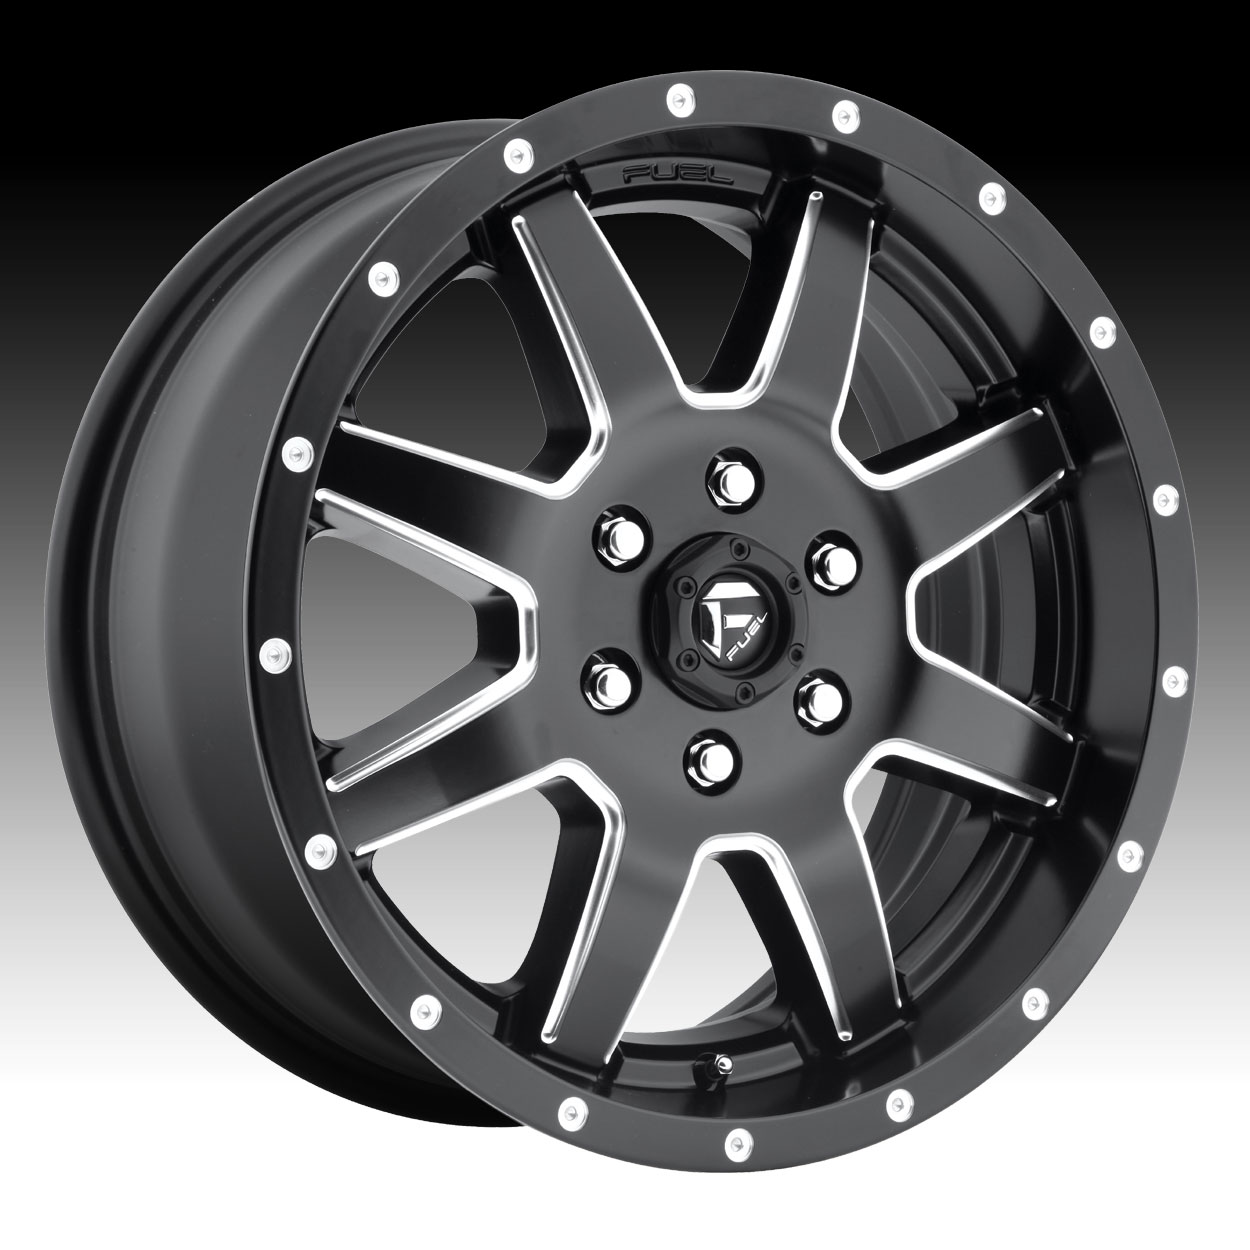 Jeep Custom Wheels >> Fuel Maverick Van D538 Black Milled Custom Van Wheels Rims ...